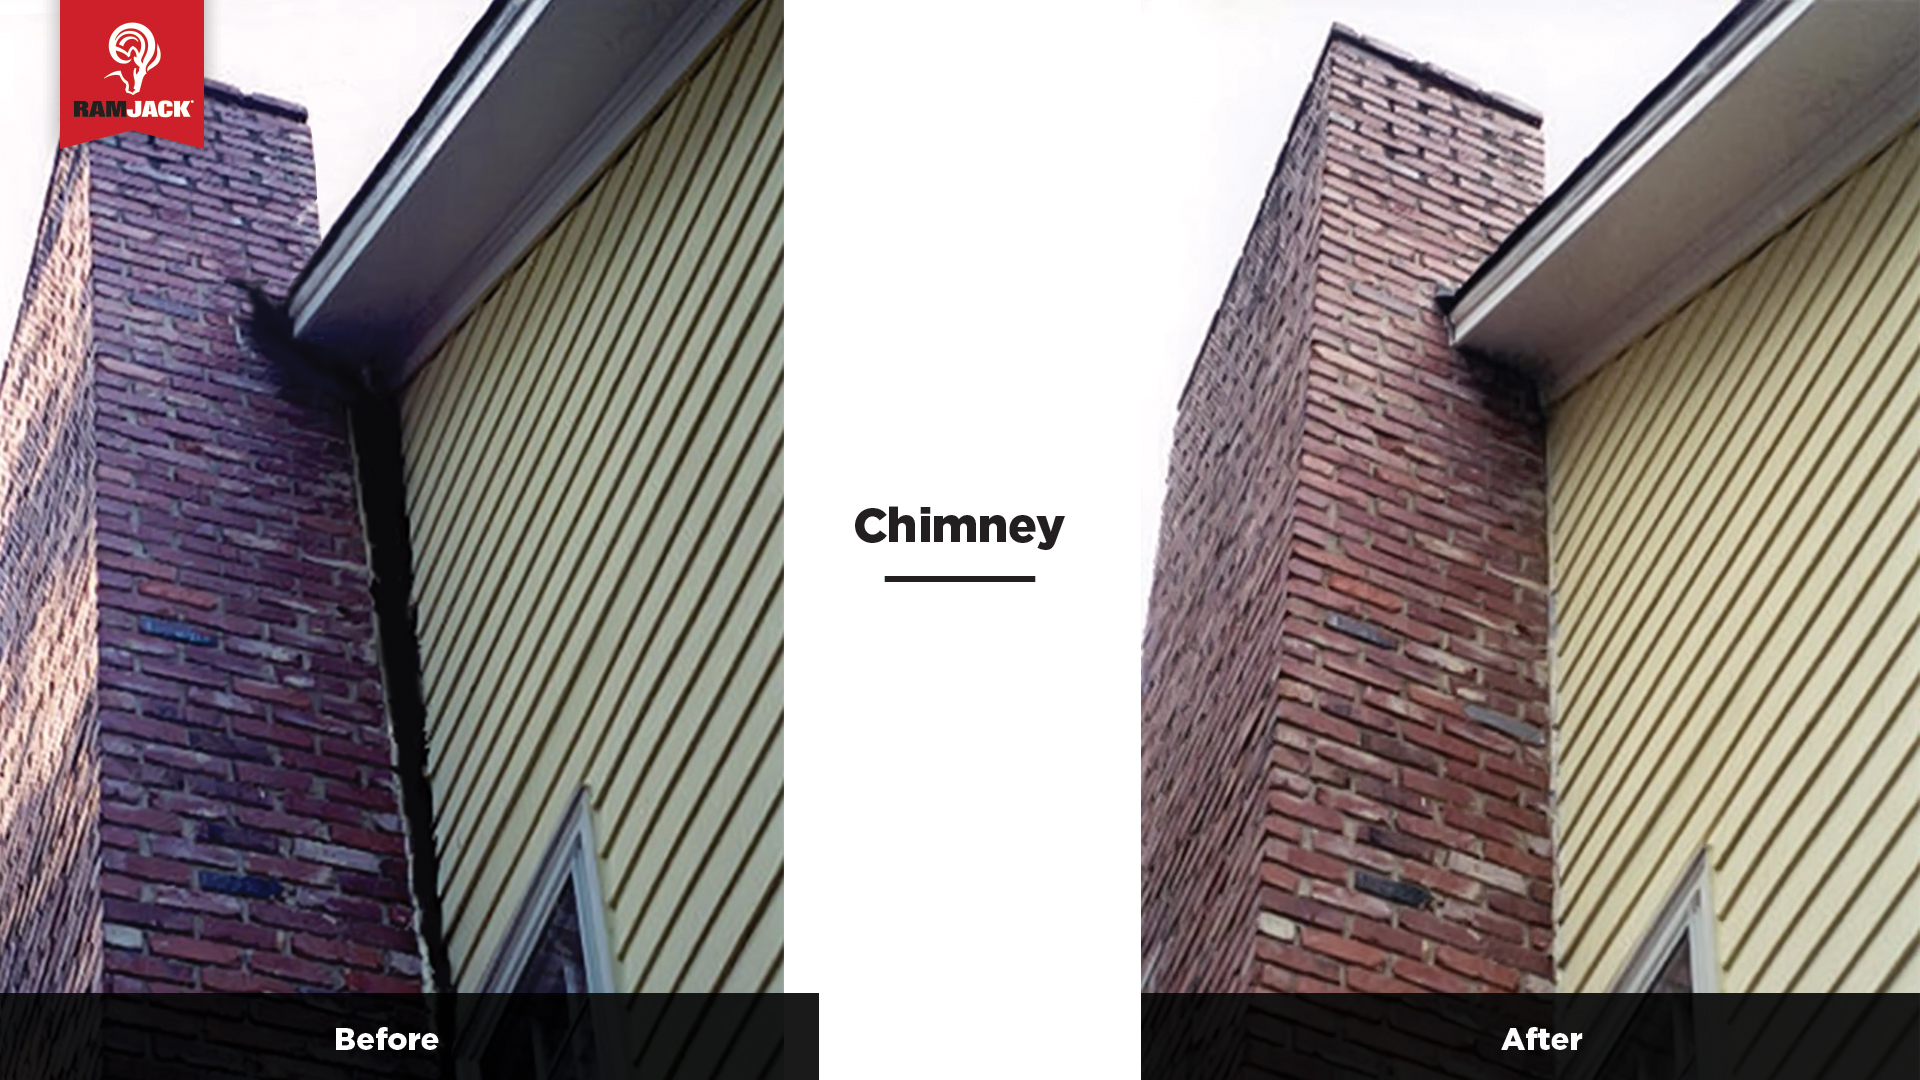 Is your chimney experiencing foundation issues? Contact the licensed